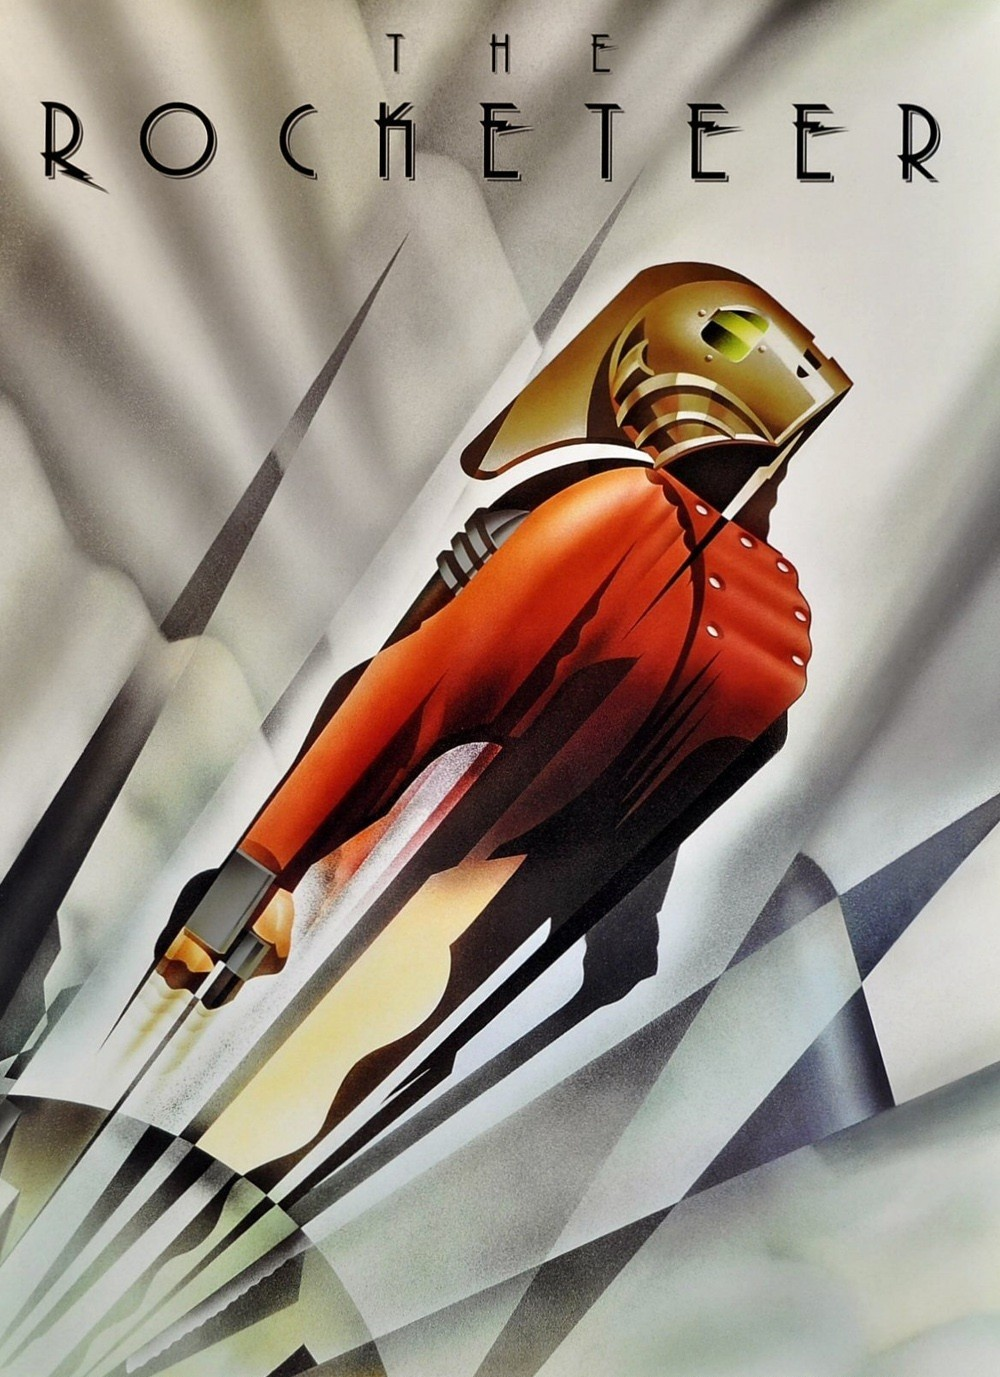 The Rocketeer; Theatrical poster designed/illustrated by John Mattos (1991)